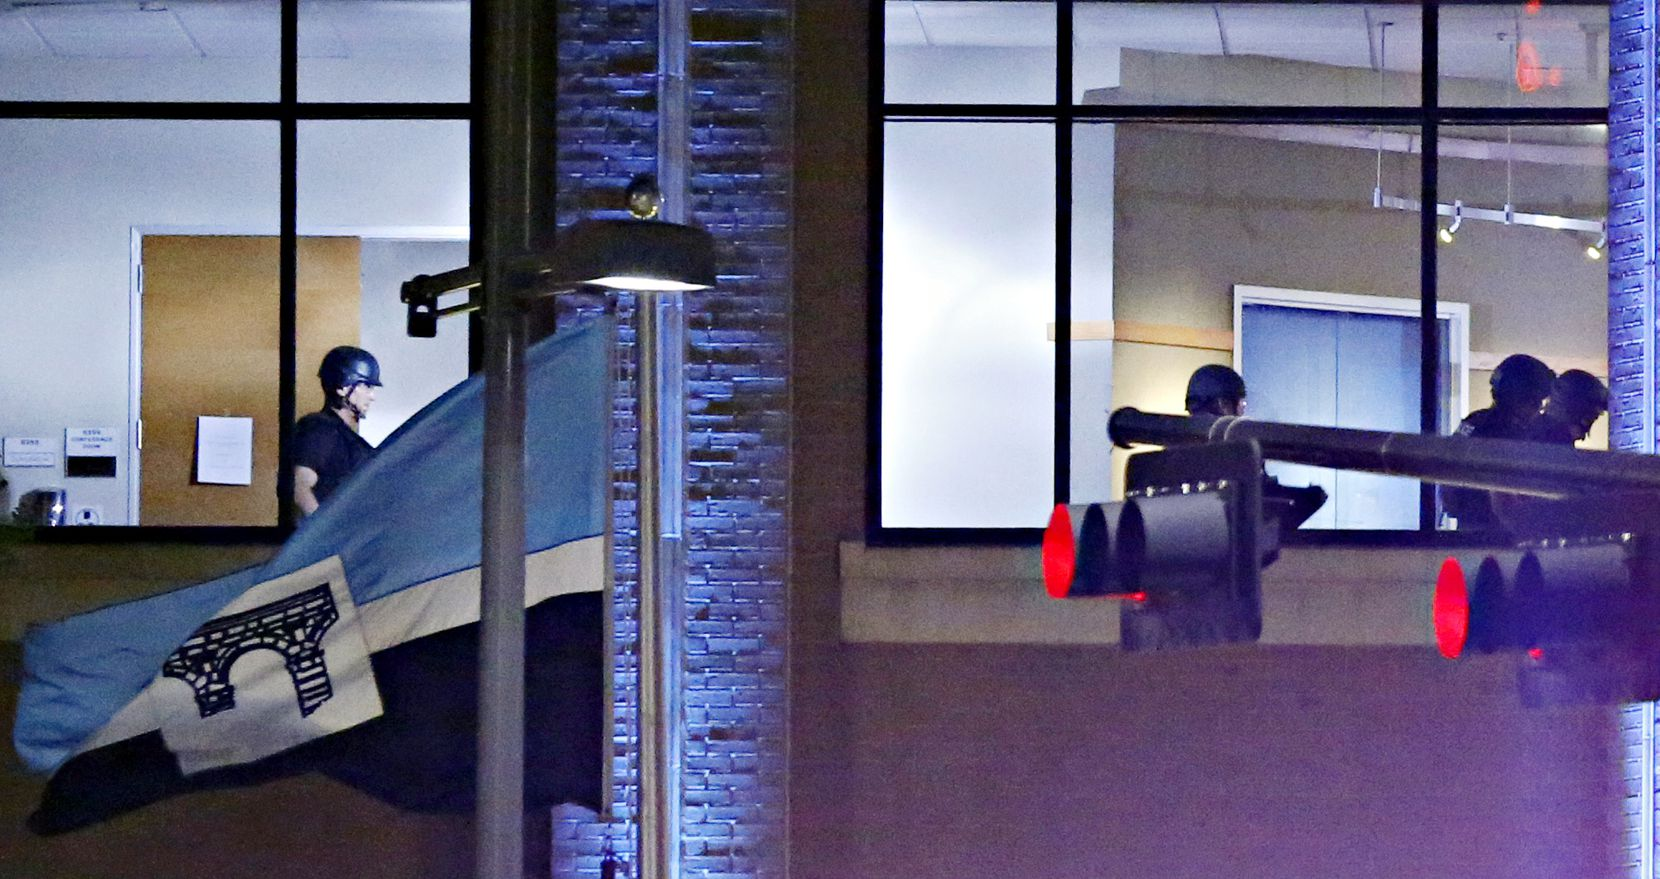 Dallas Police SWAT team members walk in a second story floor at El Centro College, early in the morning of July 8, close to the time that an explosion was heard in the building following a deadly shooting Friday, July 7, 2016 in Dallas.